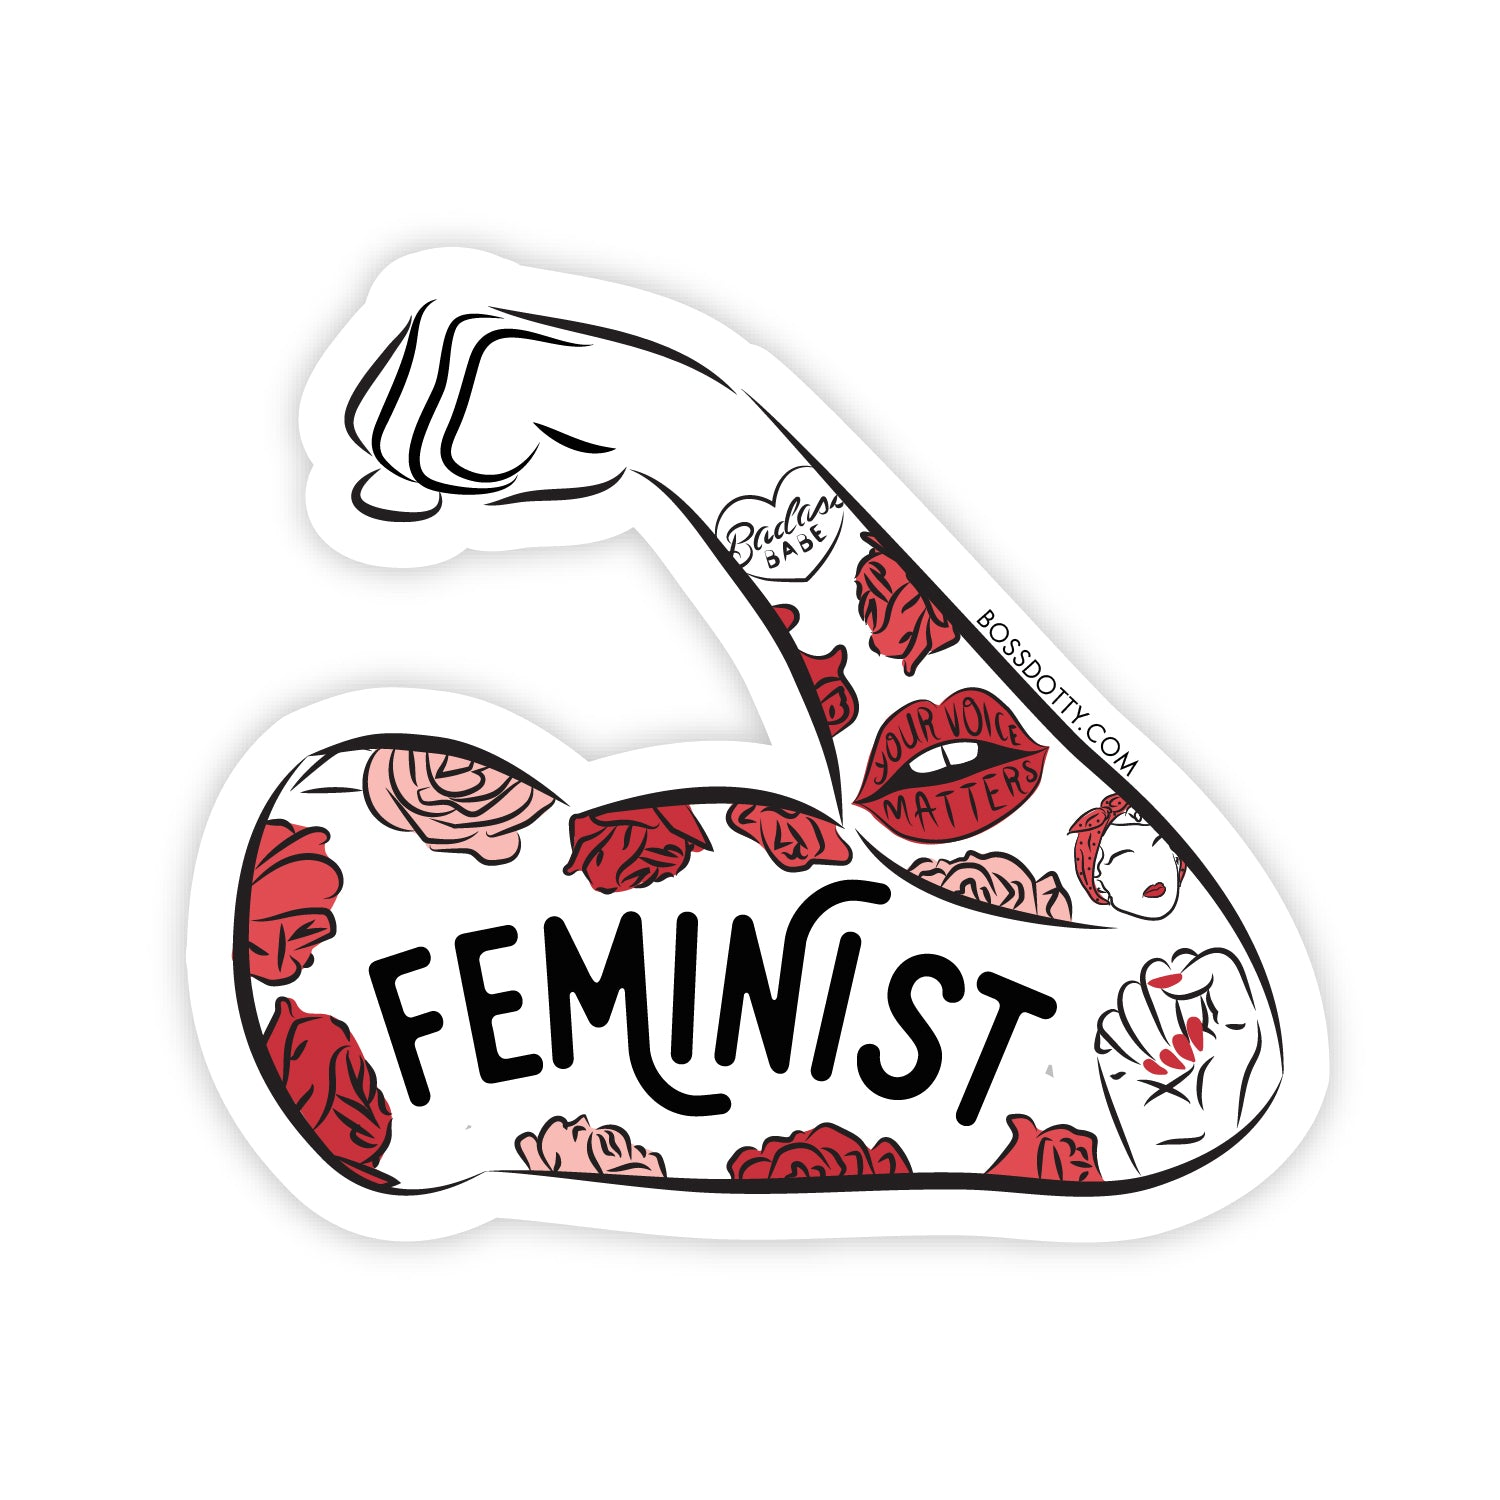 Feminist Tattoo Sleeve Sticker